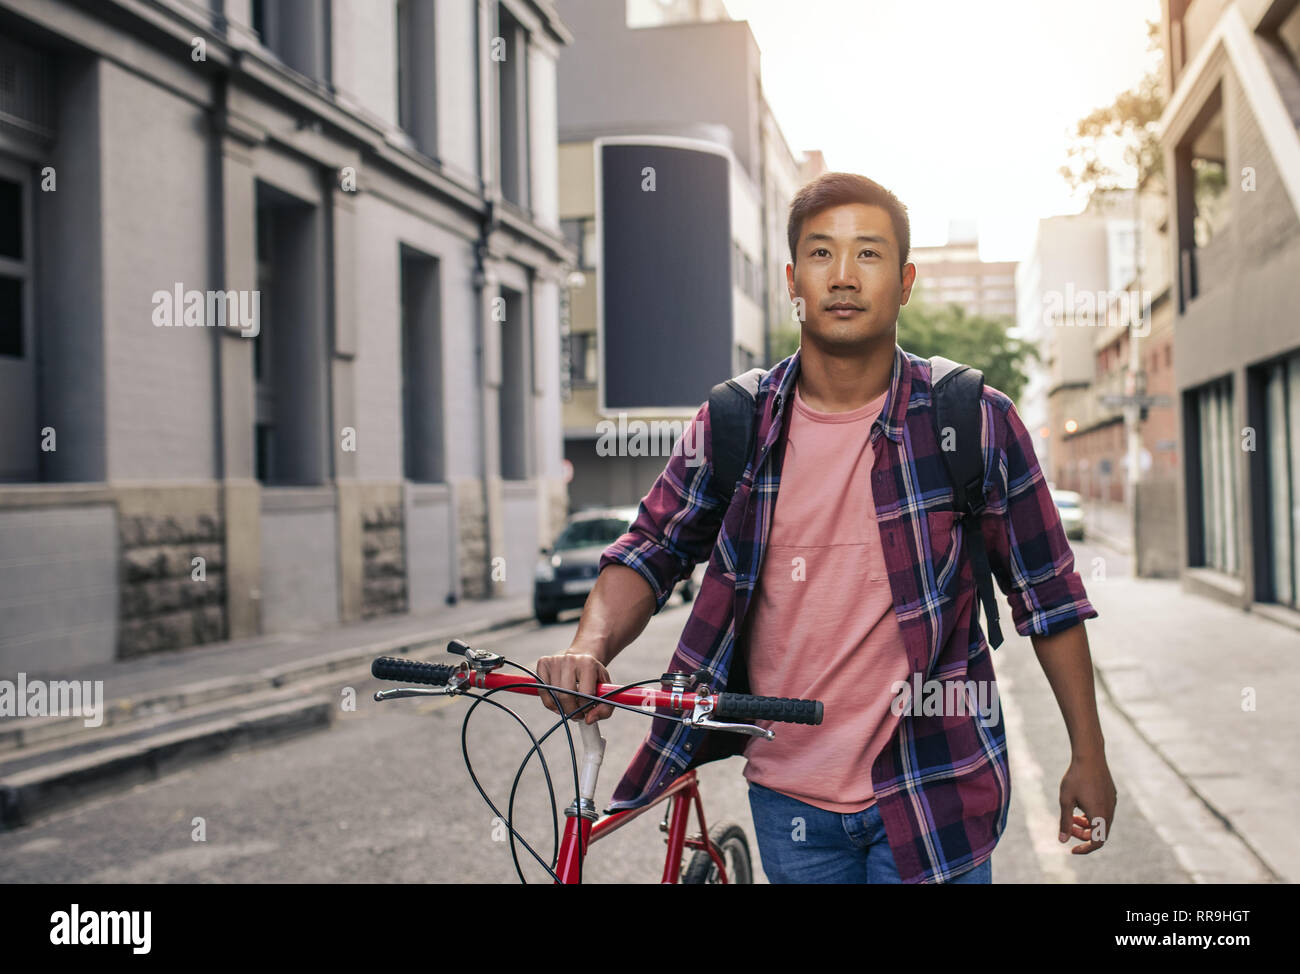 751e3cc97 Handsome Asian man walking with his bike through city streets - Stock Image